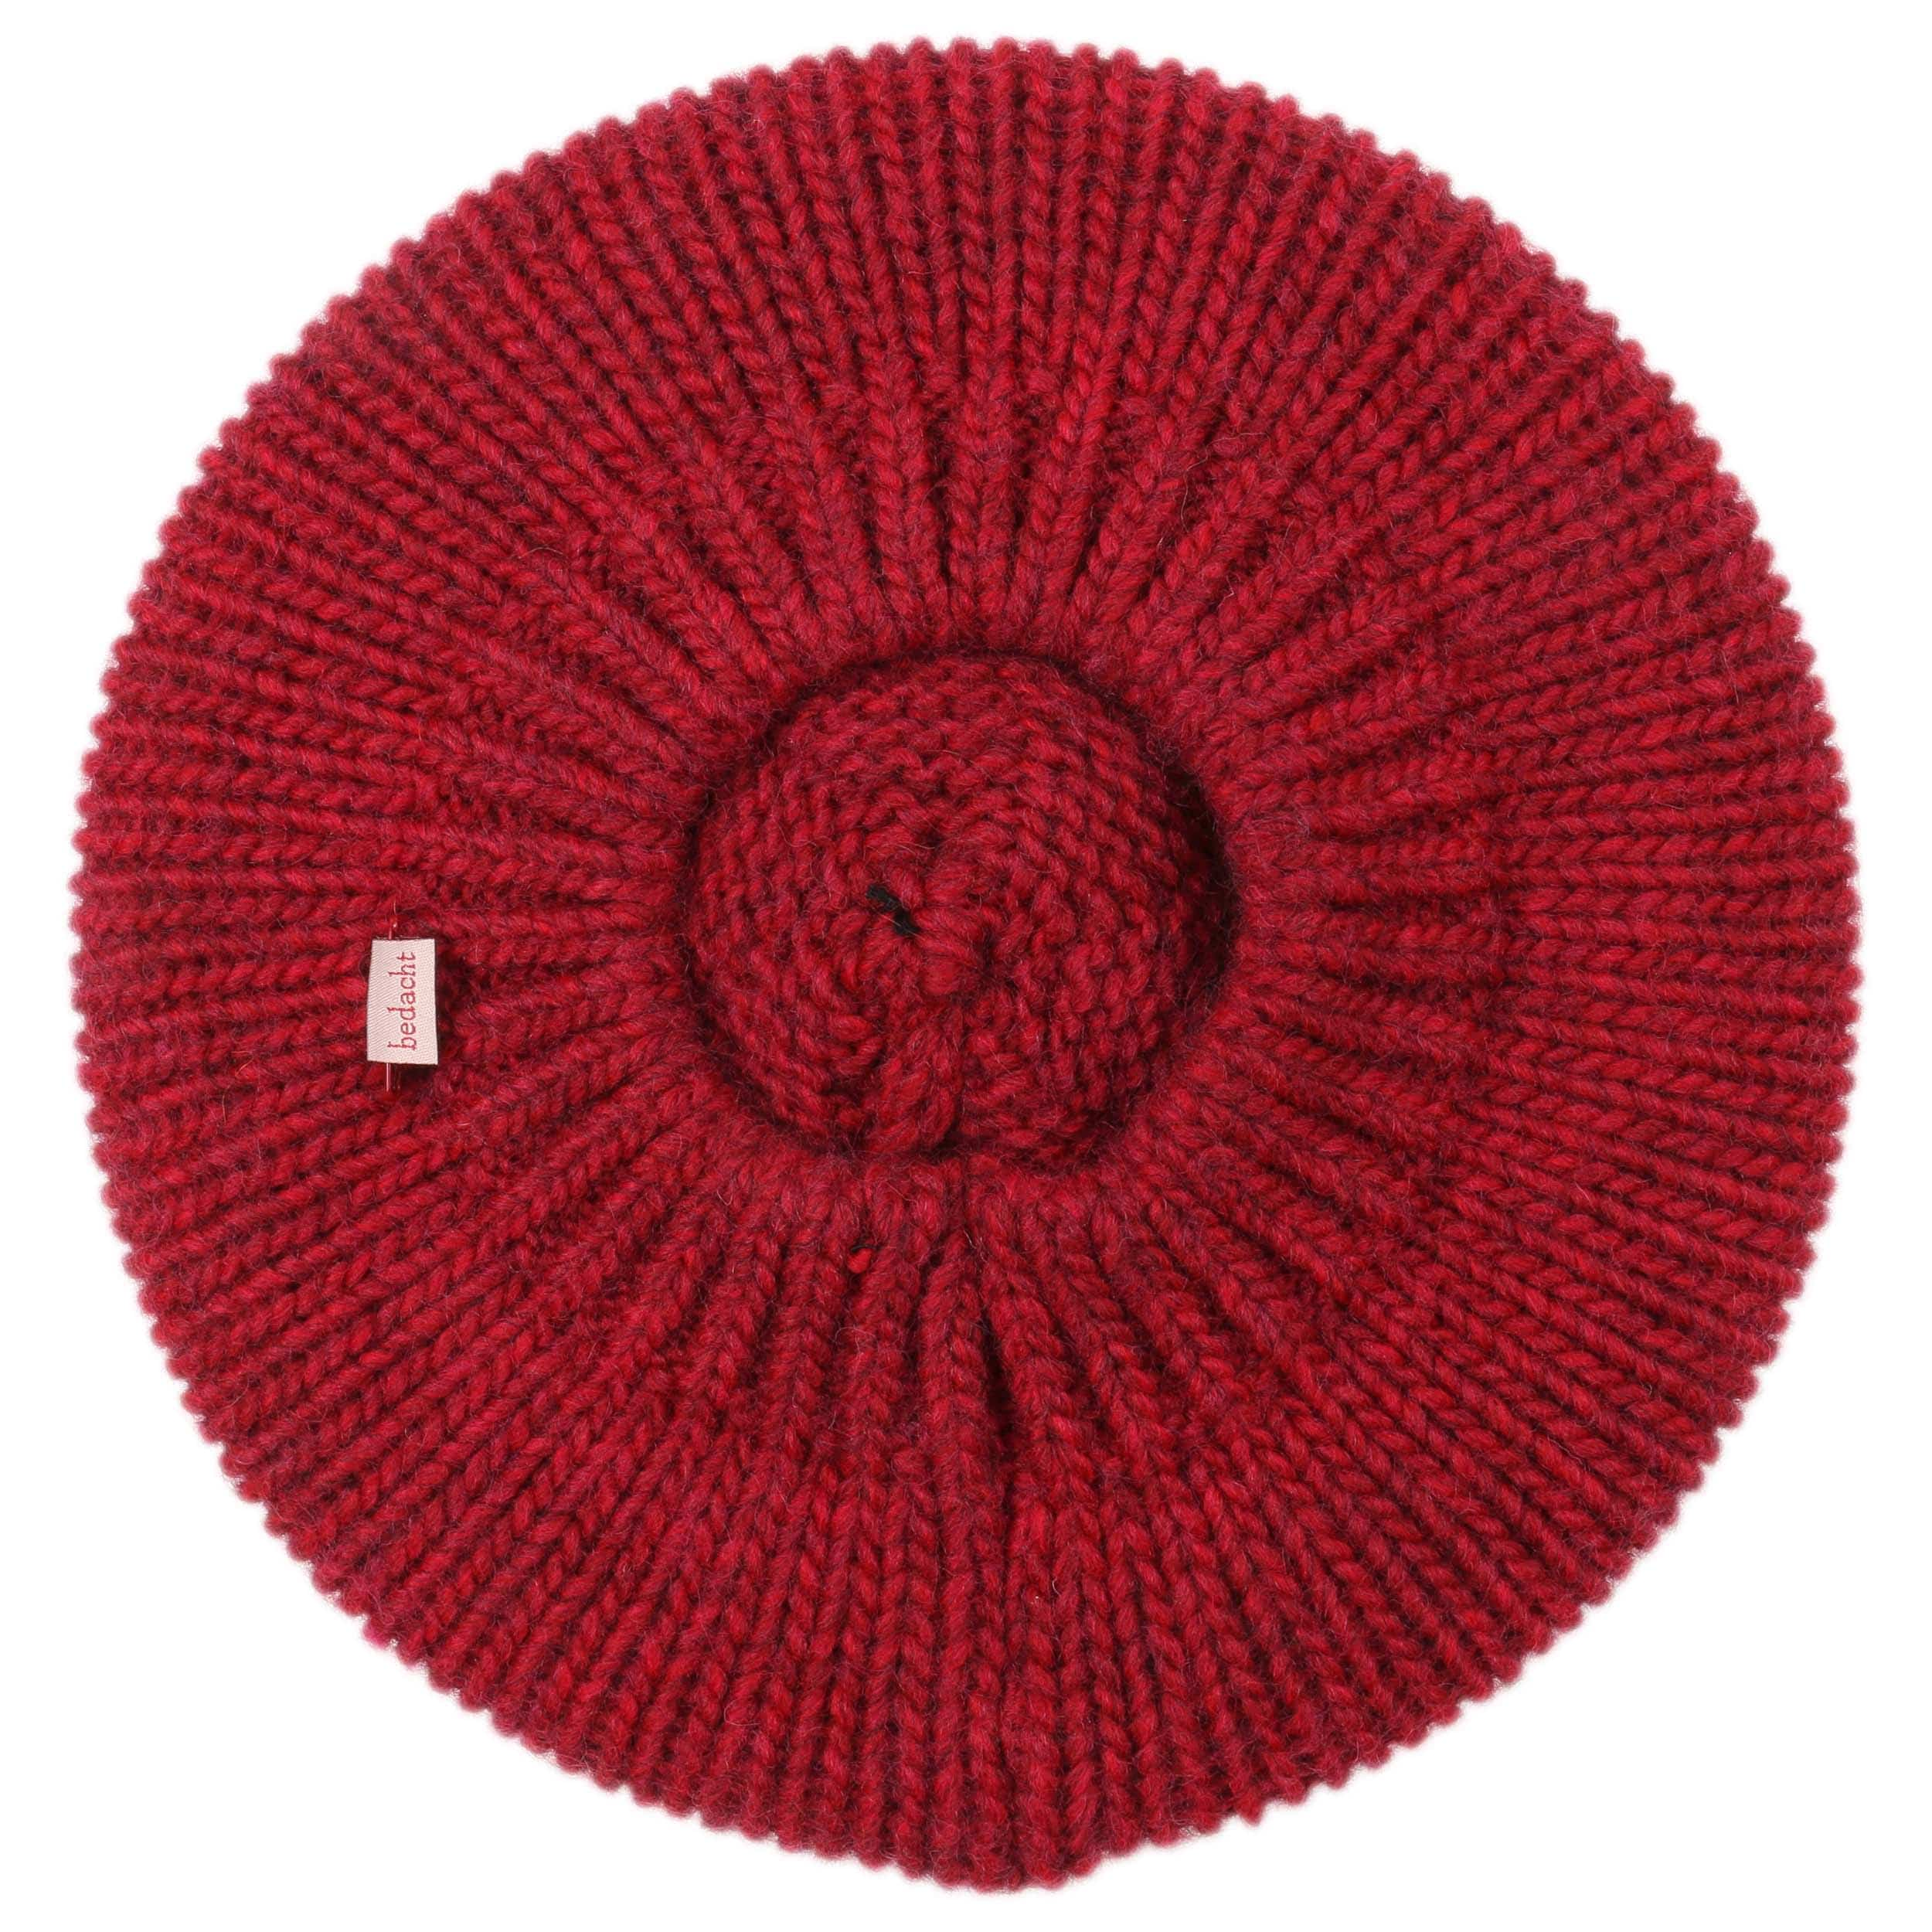 Nemo Knit Beret with Pompom by bedacht, GBP 39,95 --> Hats, caps & bea...